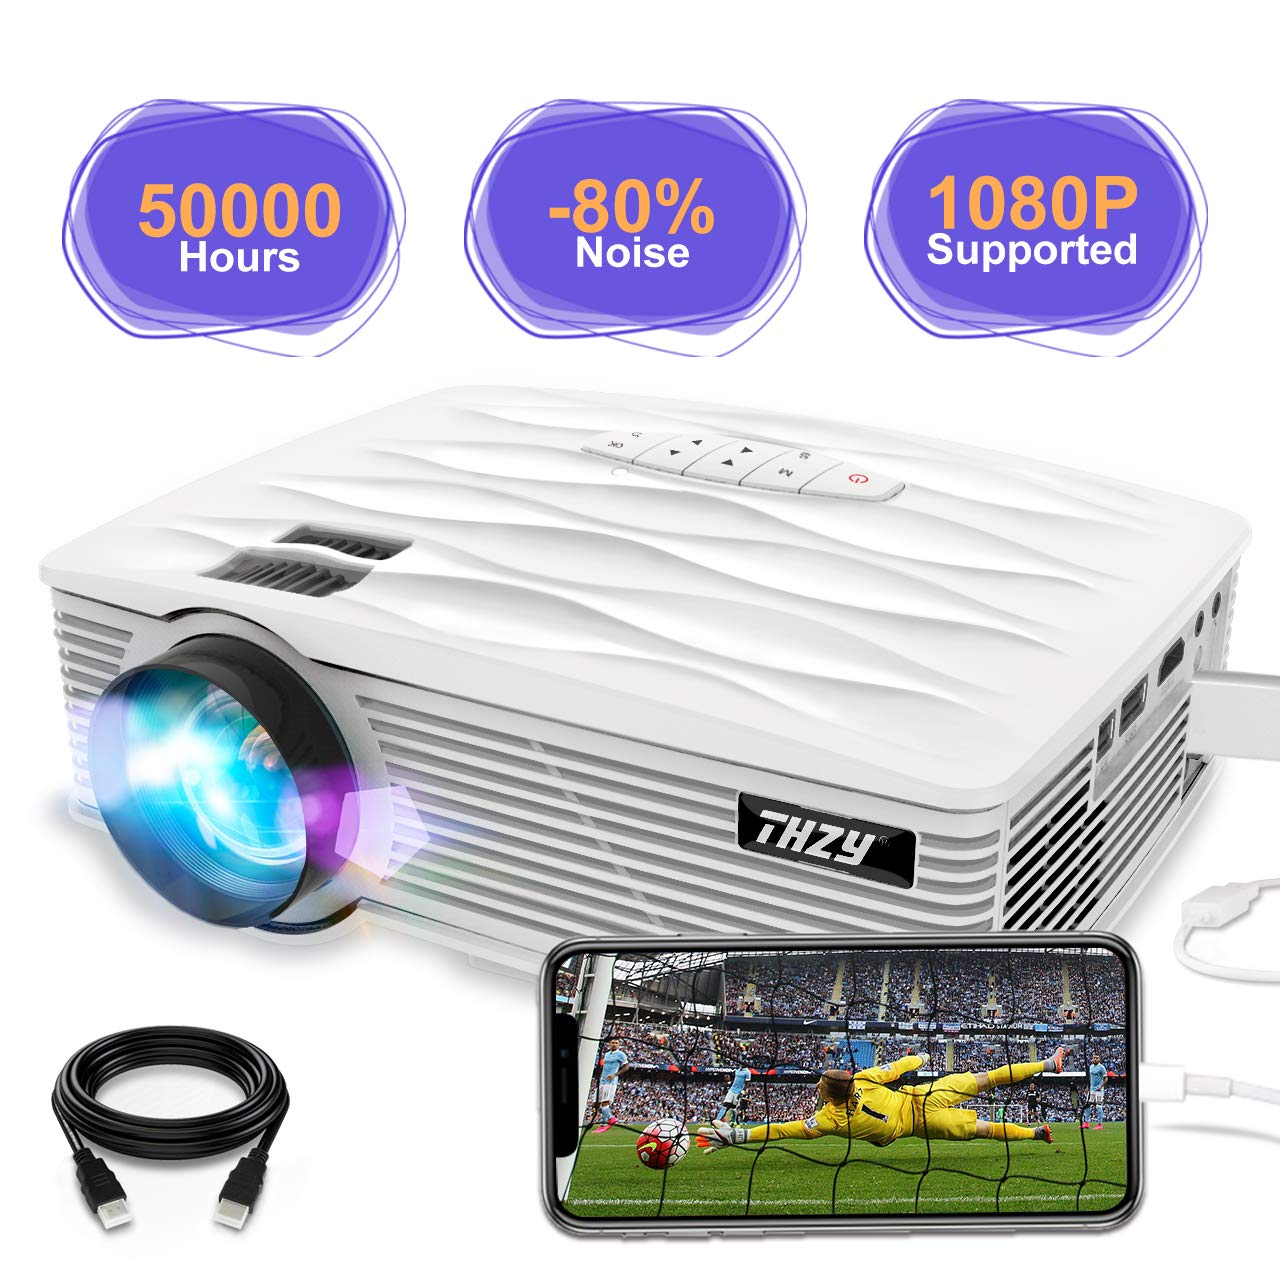 THZY Mini Projector 2200 Lumens Portable Video Projector,50000 Hours Multimedia Home Theater Movie Projector 1080P Support,Compatible with Amazon Fire TV Stick HDMI,VGA,USB,AV,Laptop,Smartphone